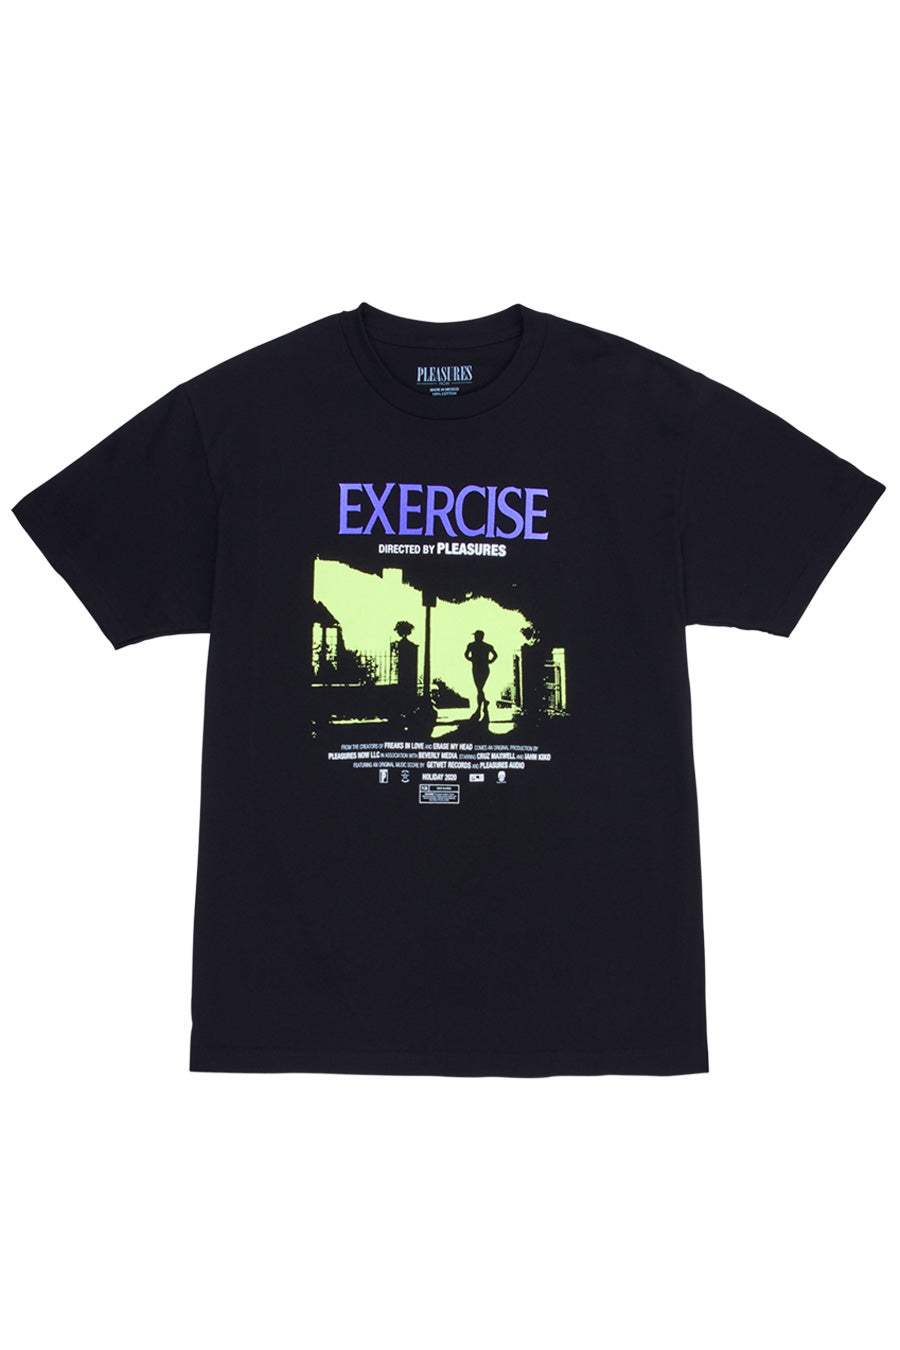 Pleasures - Black Exercise T-Shirt